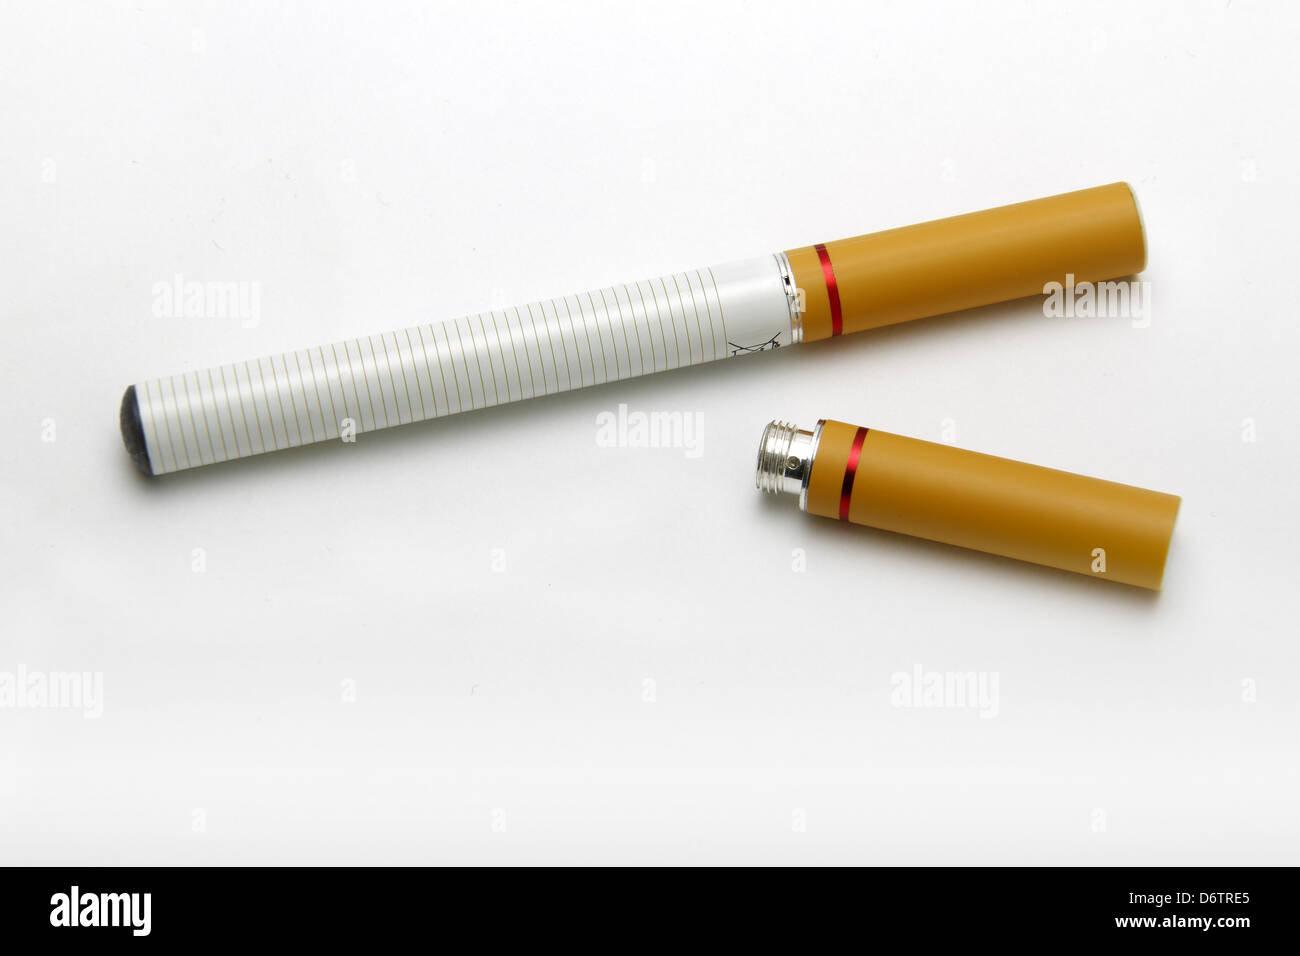 Electronic cigarette and spare nicotine cartridge. - Stock Image